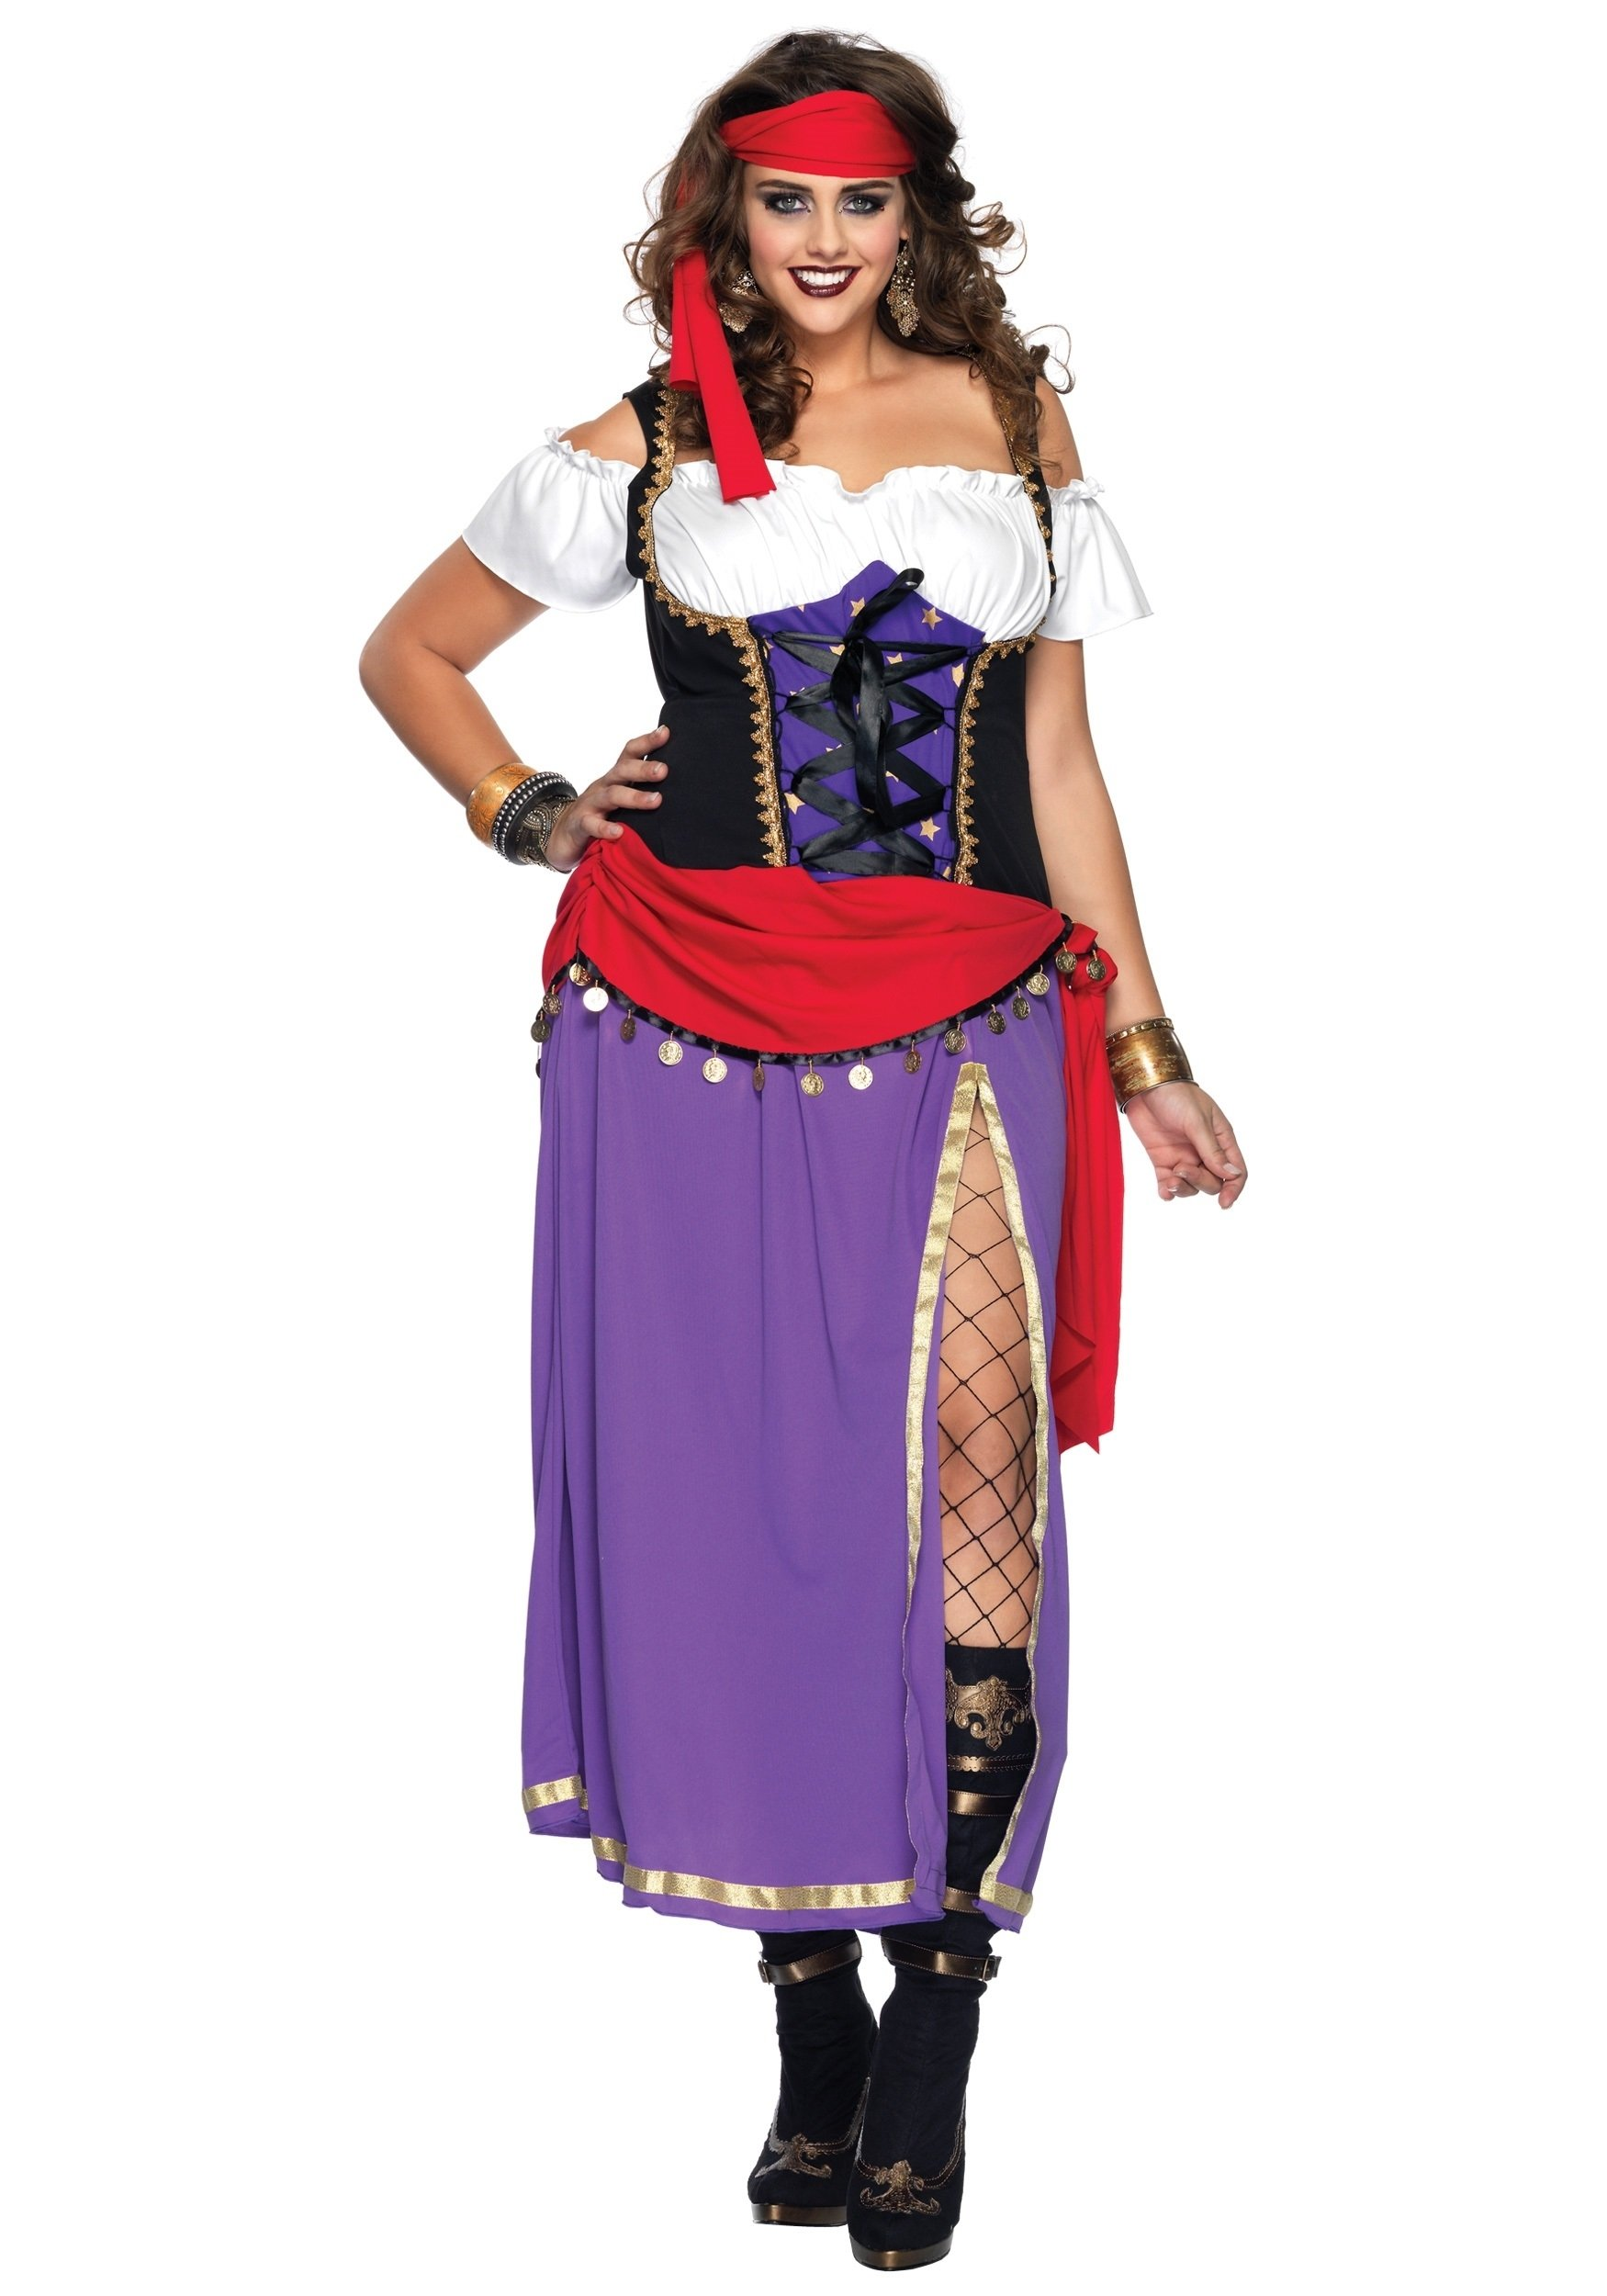 10 Cute Plus Size Halloween Costumes Ideas plus traveling gypsy costume 2020